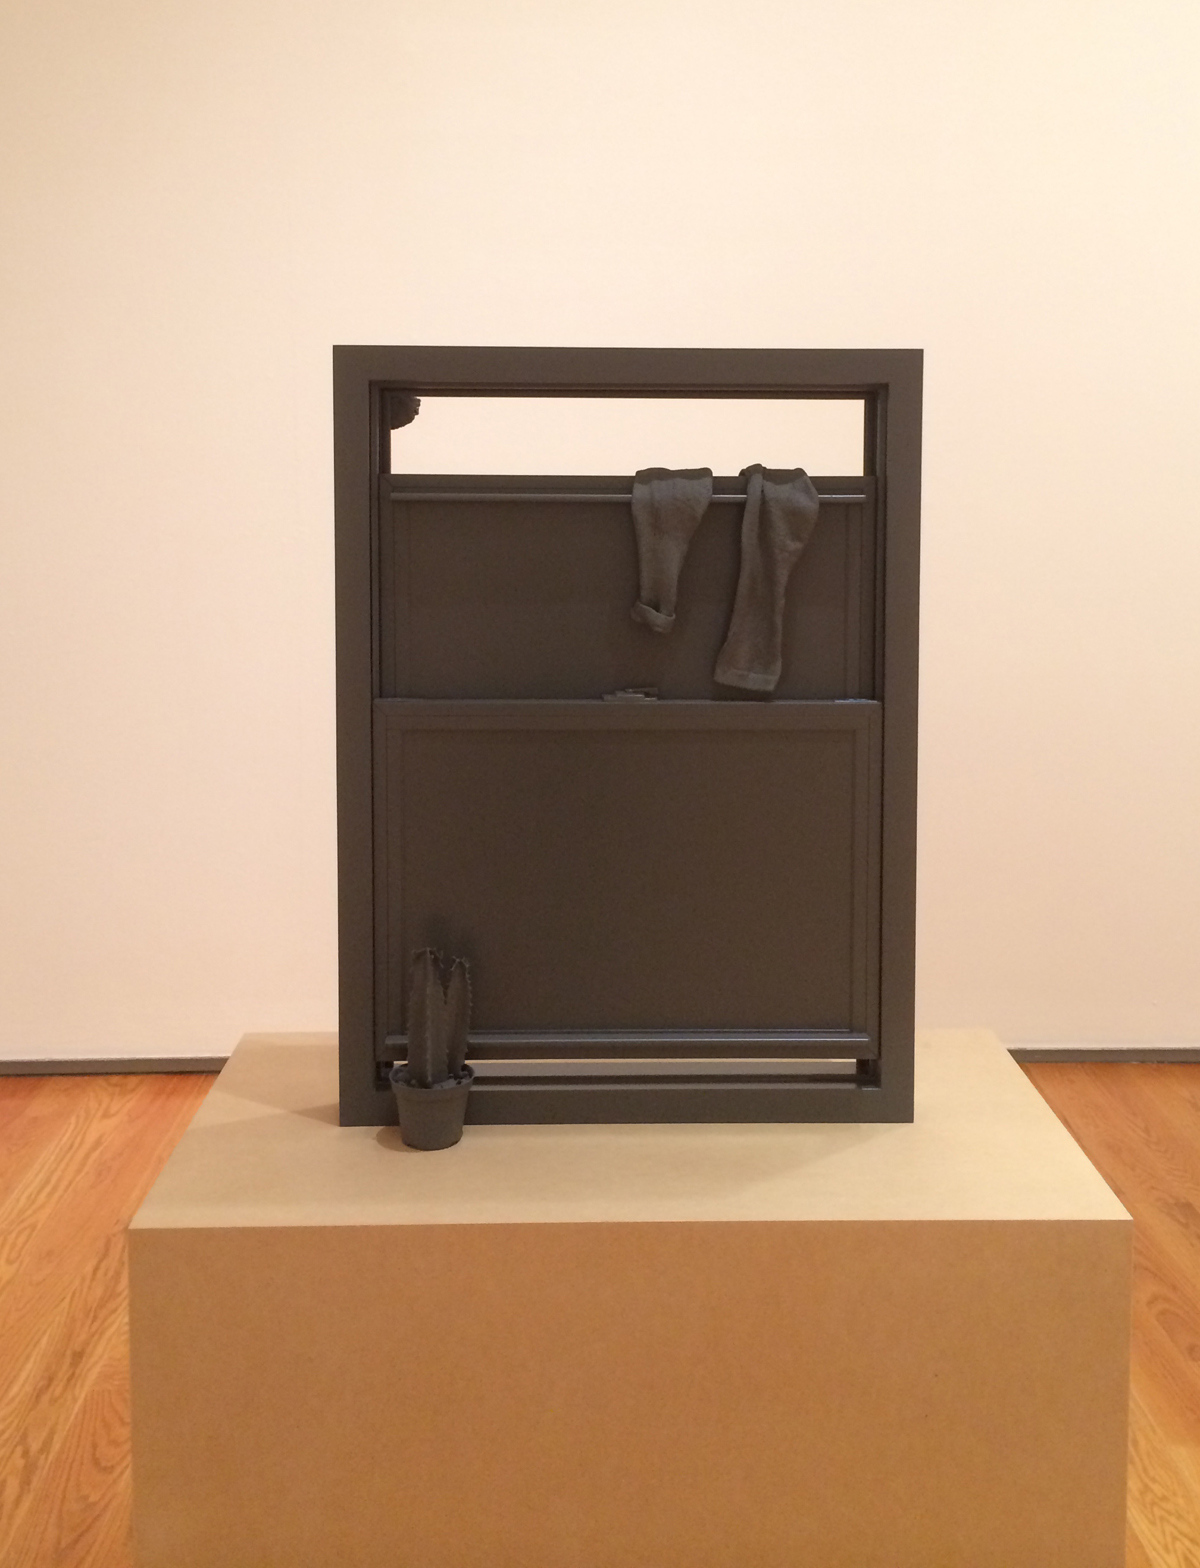 Window, 2012, painted stainless steel, bronze, 36 x 24 x 10